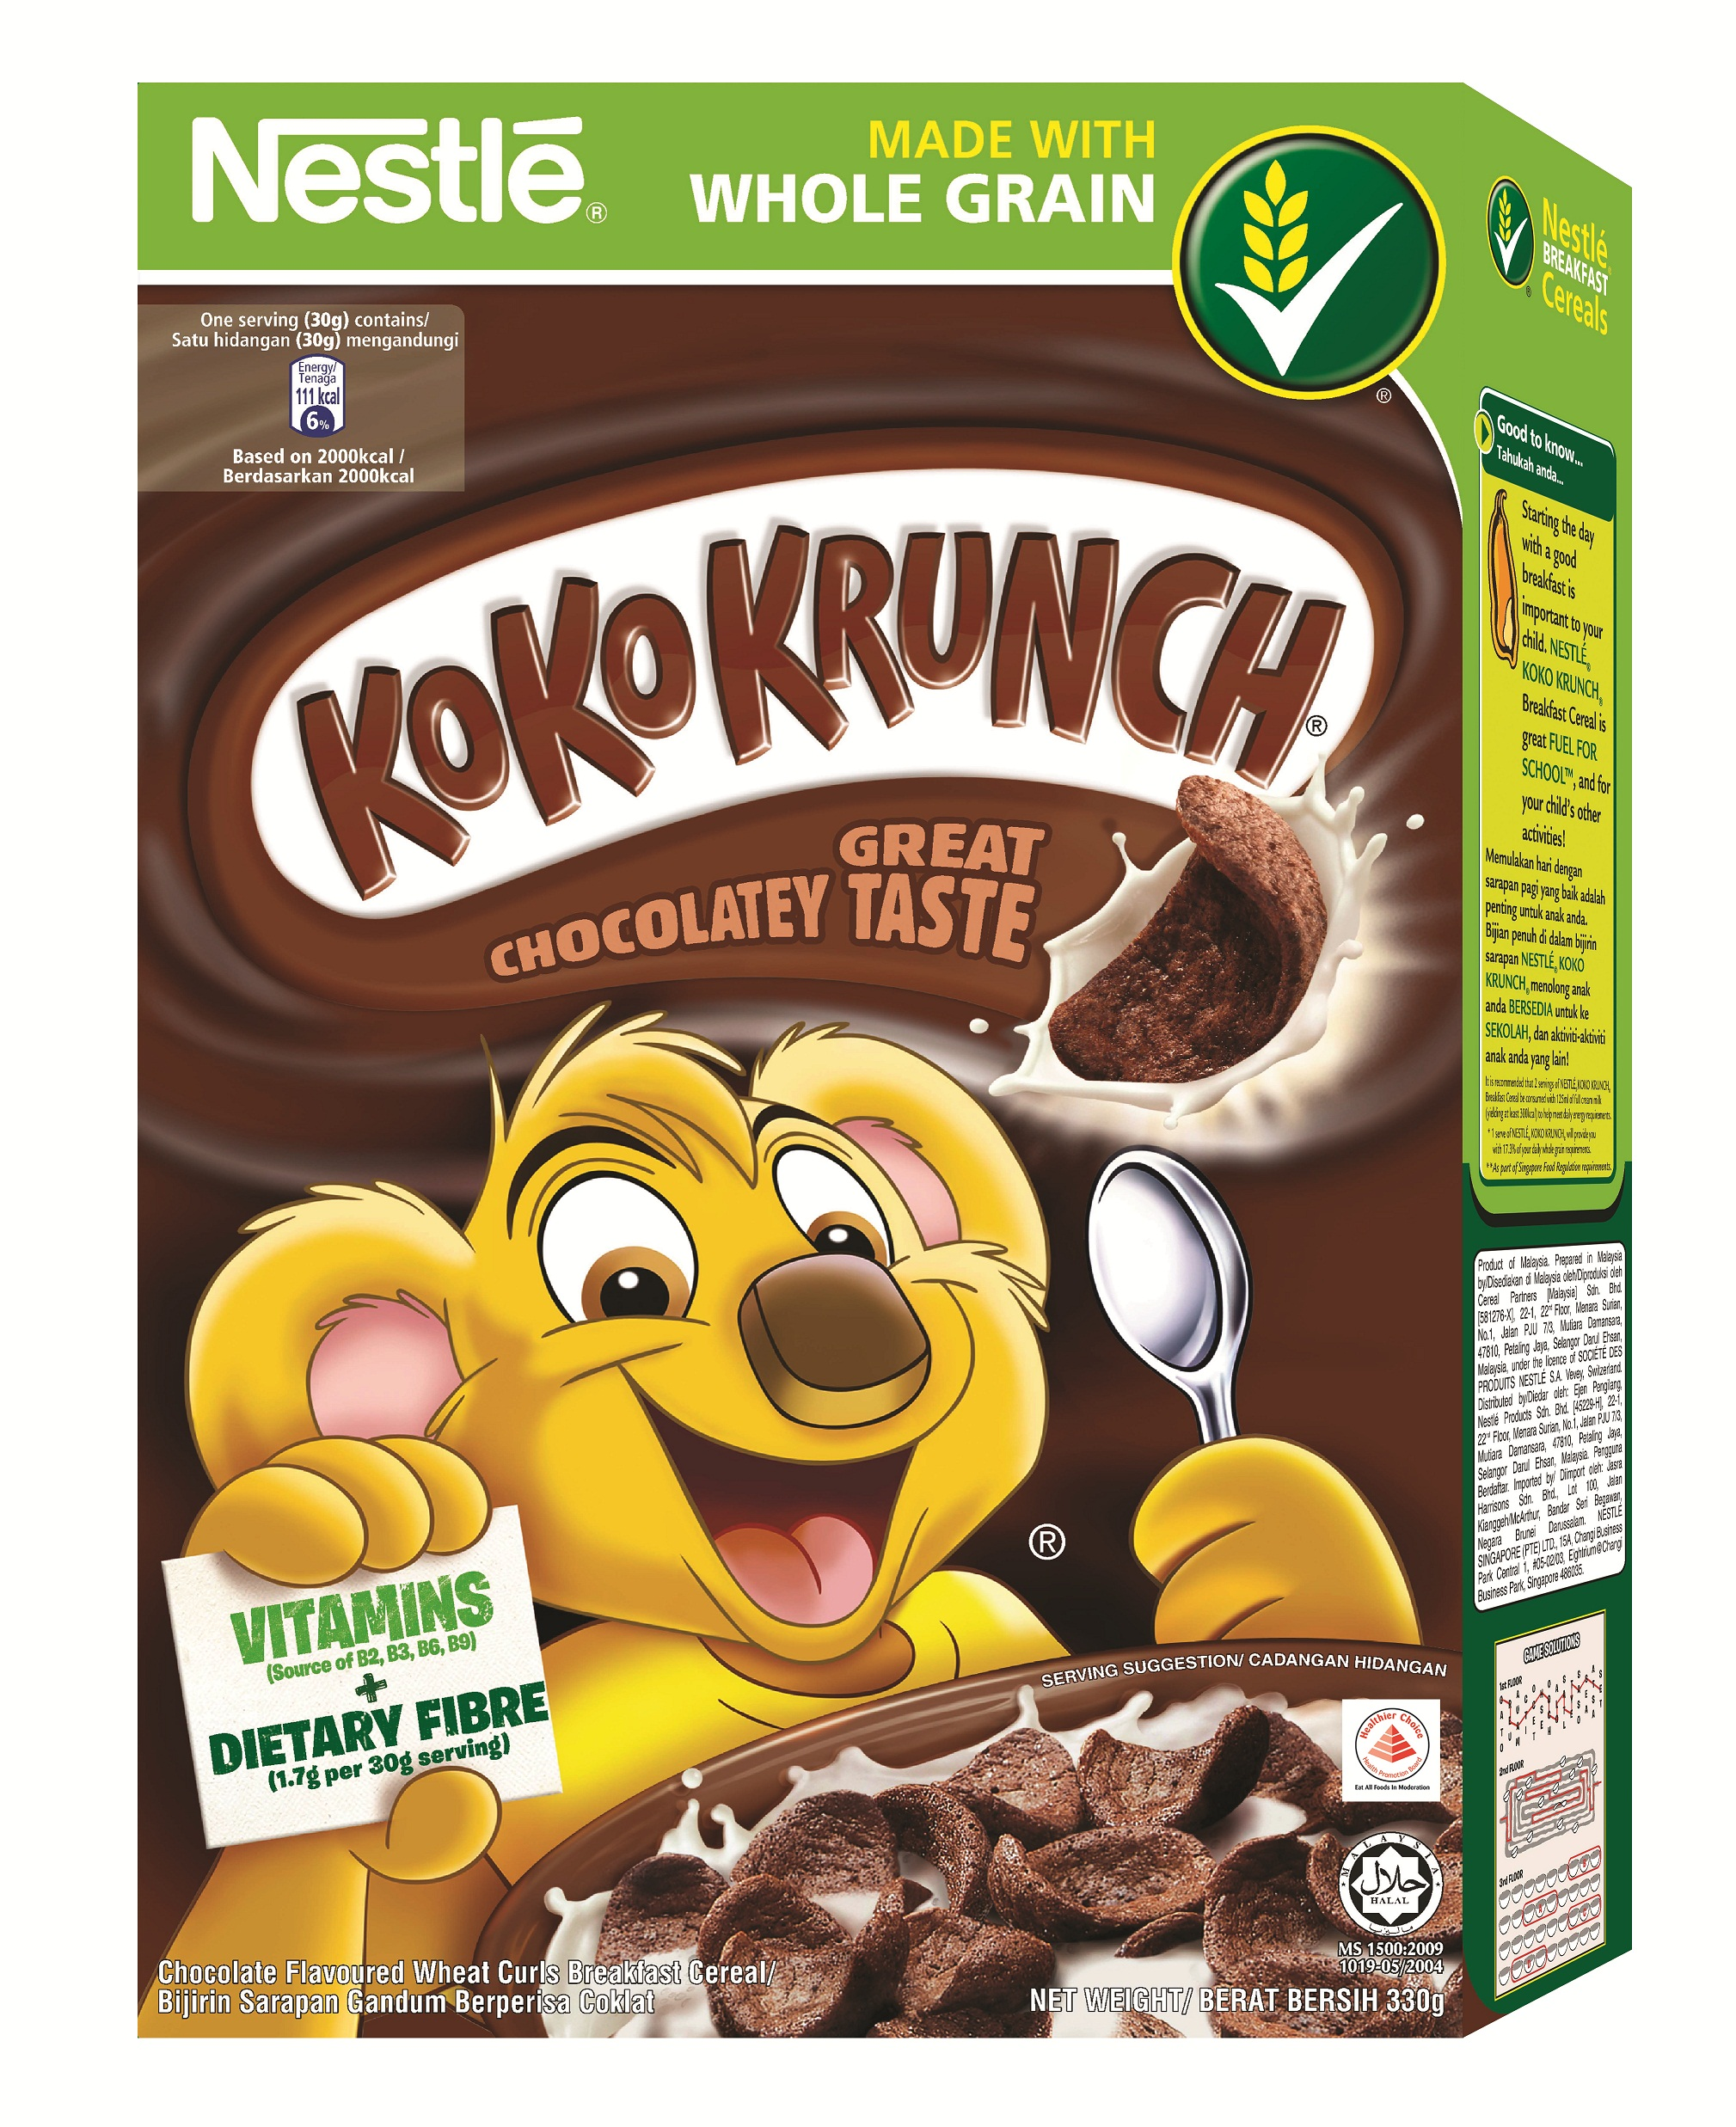 Koko Krunch Great Chocolatey Taste Mummy Ed